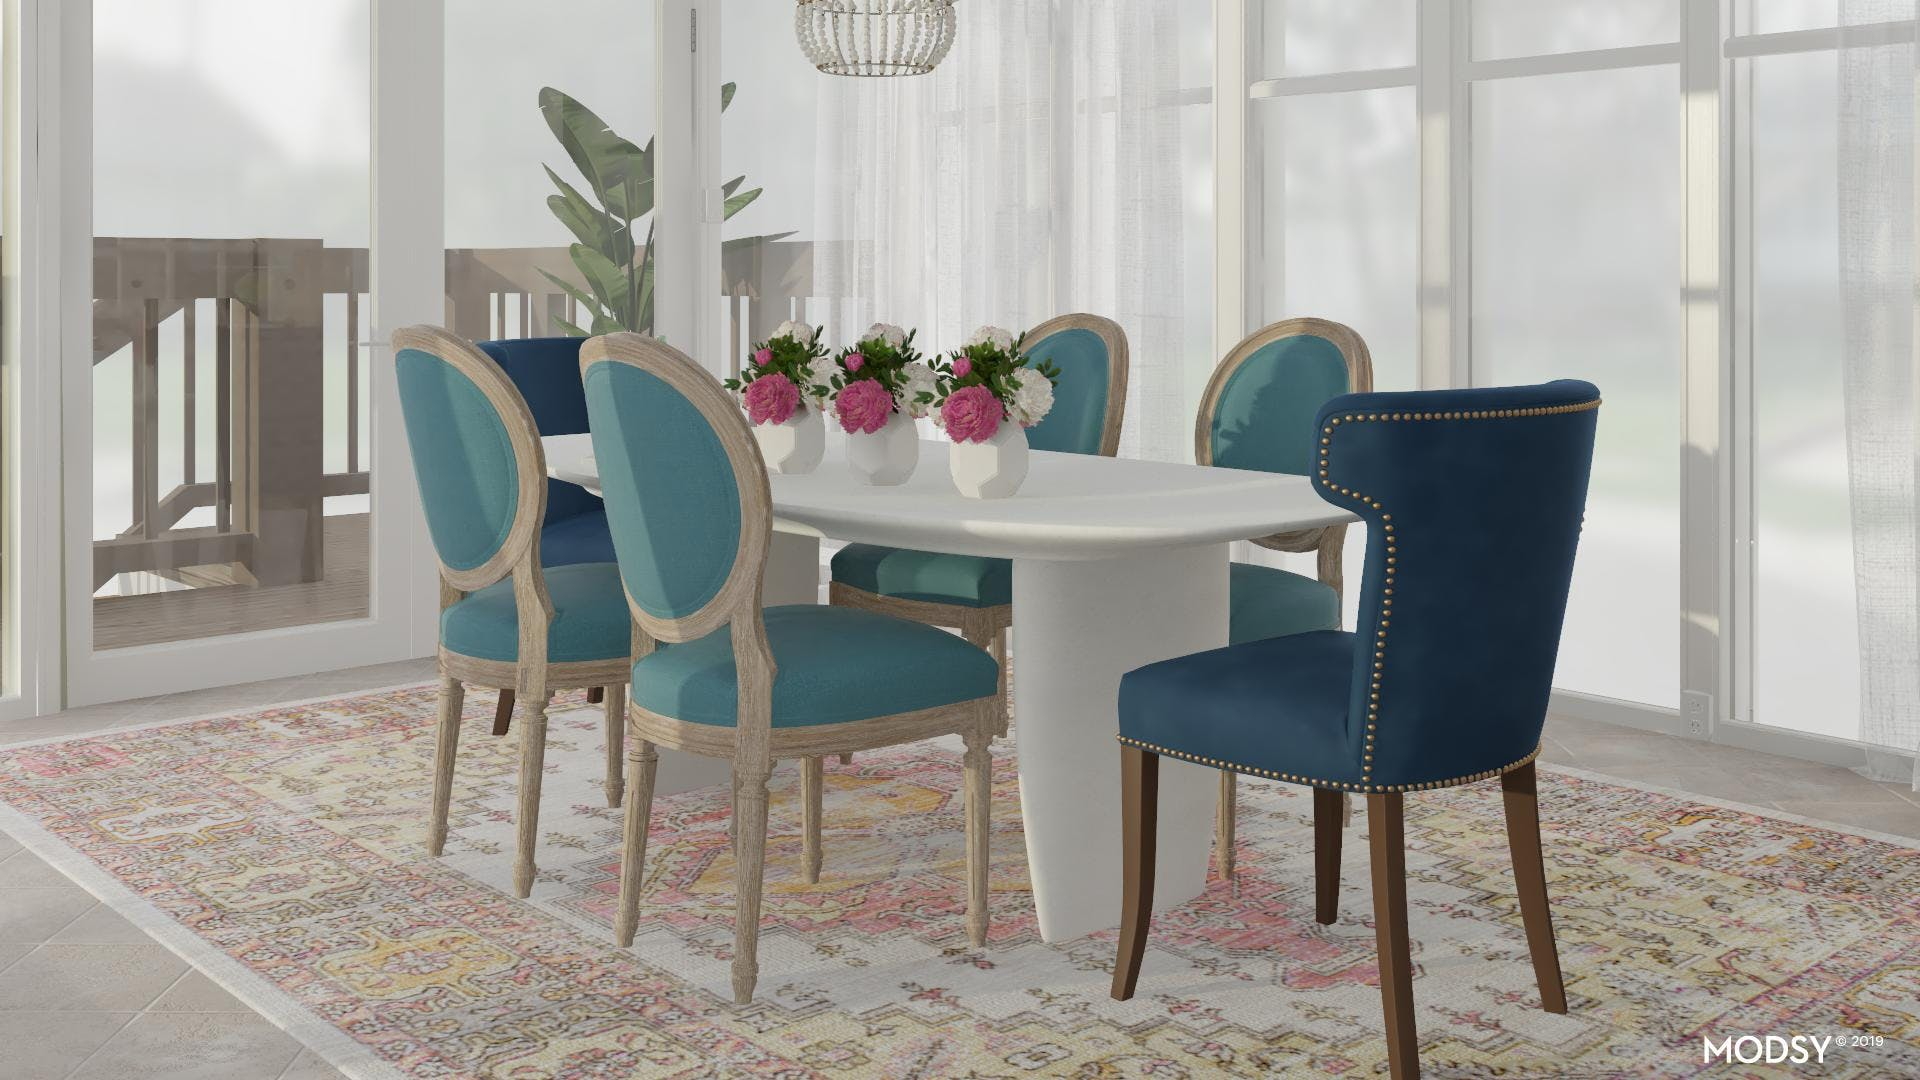 Light-Filled Coastal Dining Room with Color